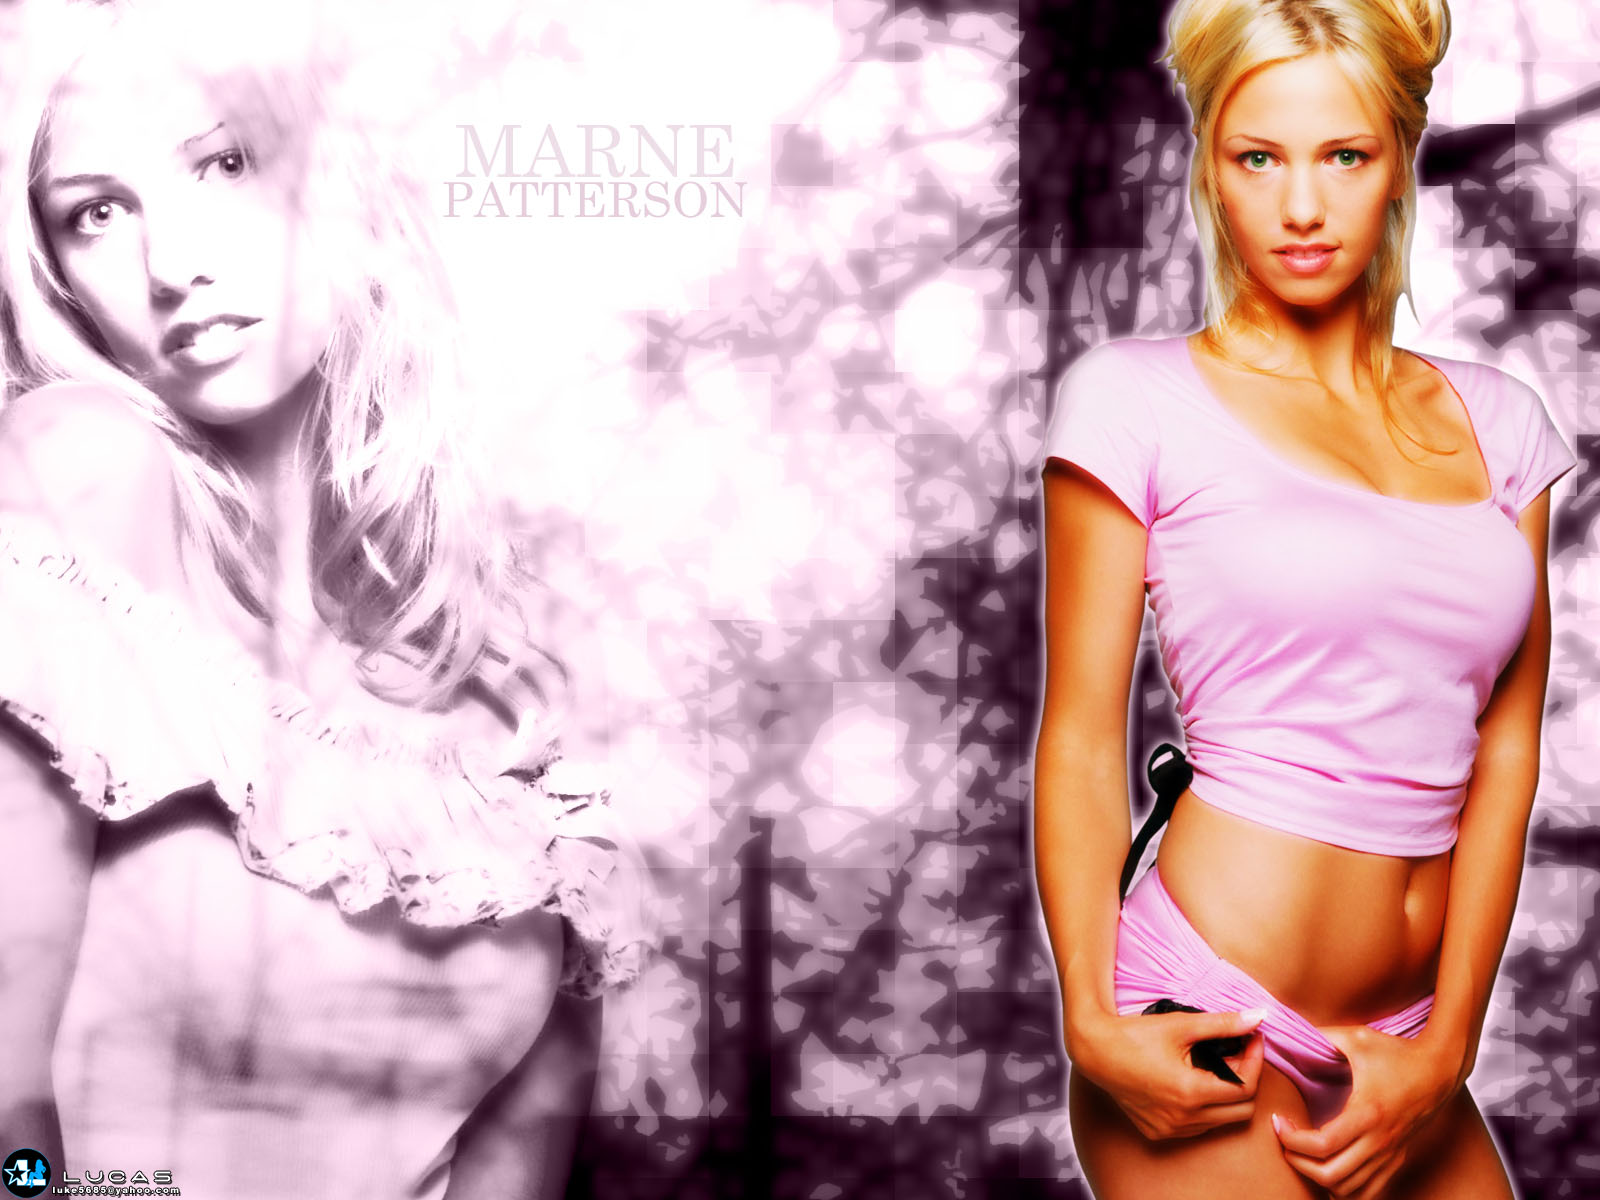 Marne Patterson - Wallpaper Hot